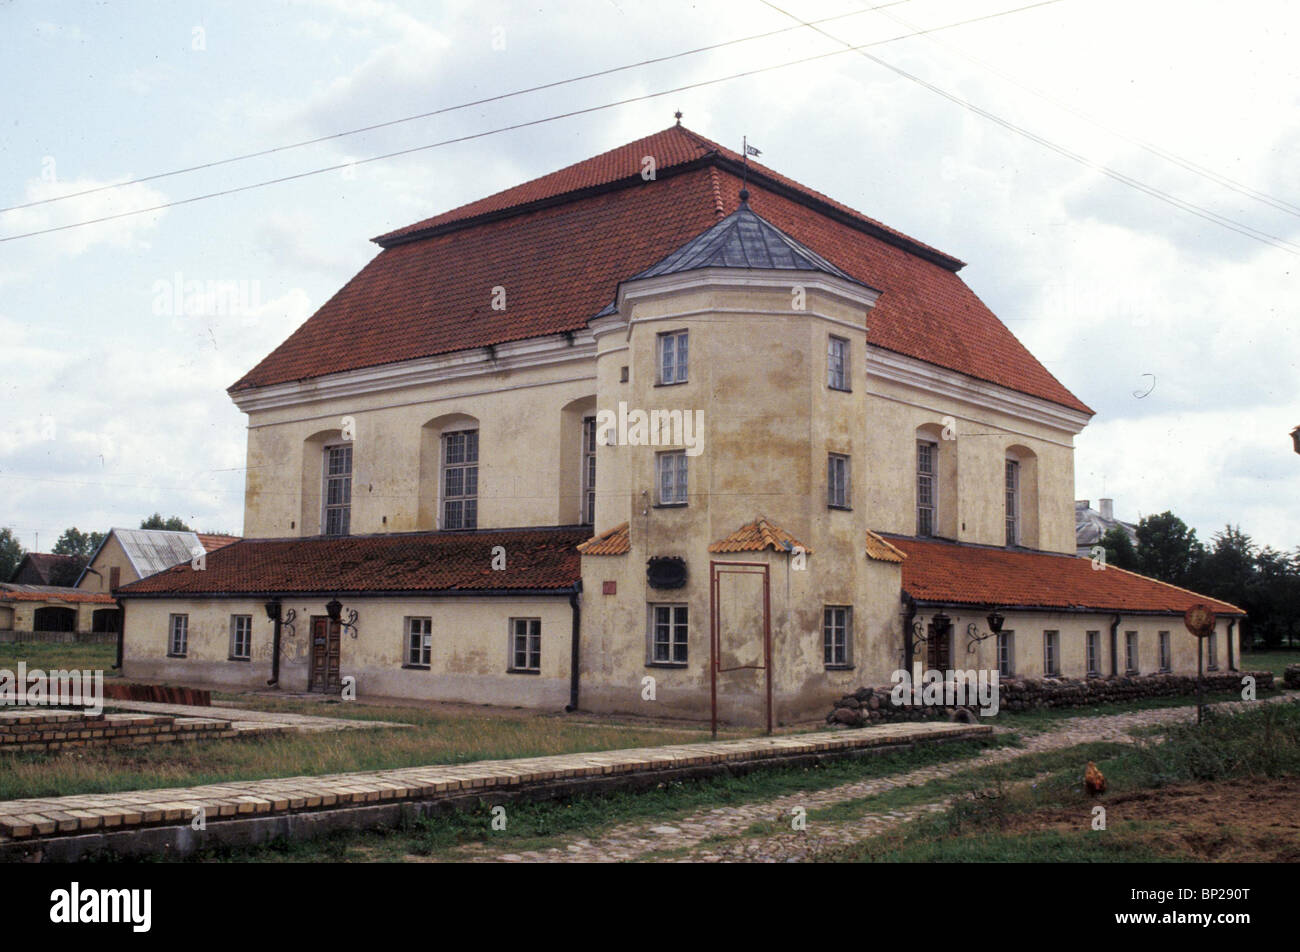 2463. THE TIKOCHIN SYNAGOGUE, POLAND, 18TH. C.